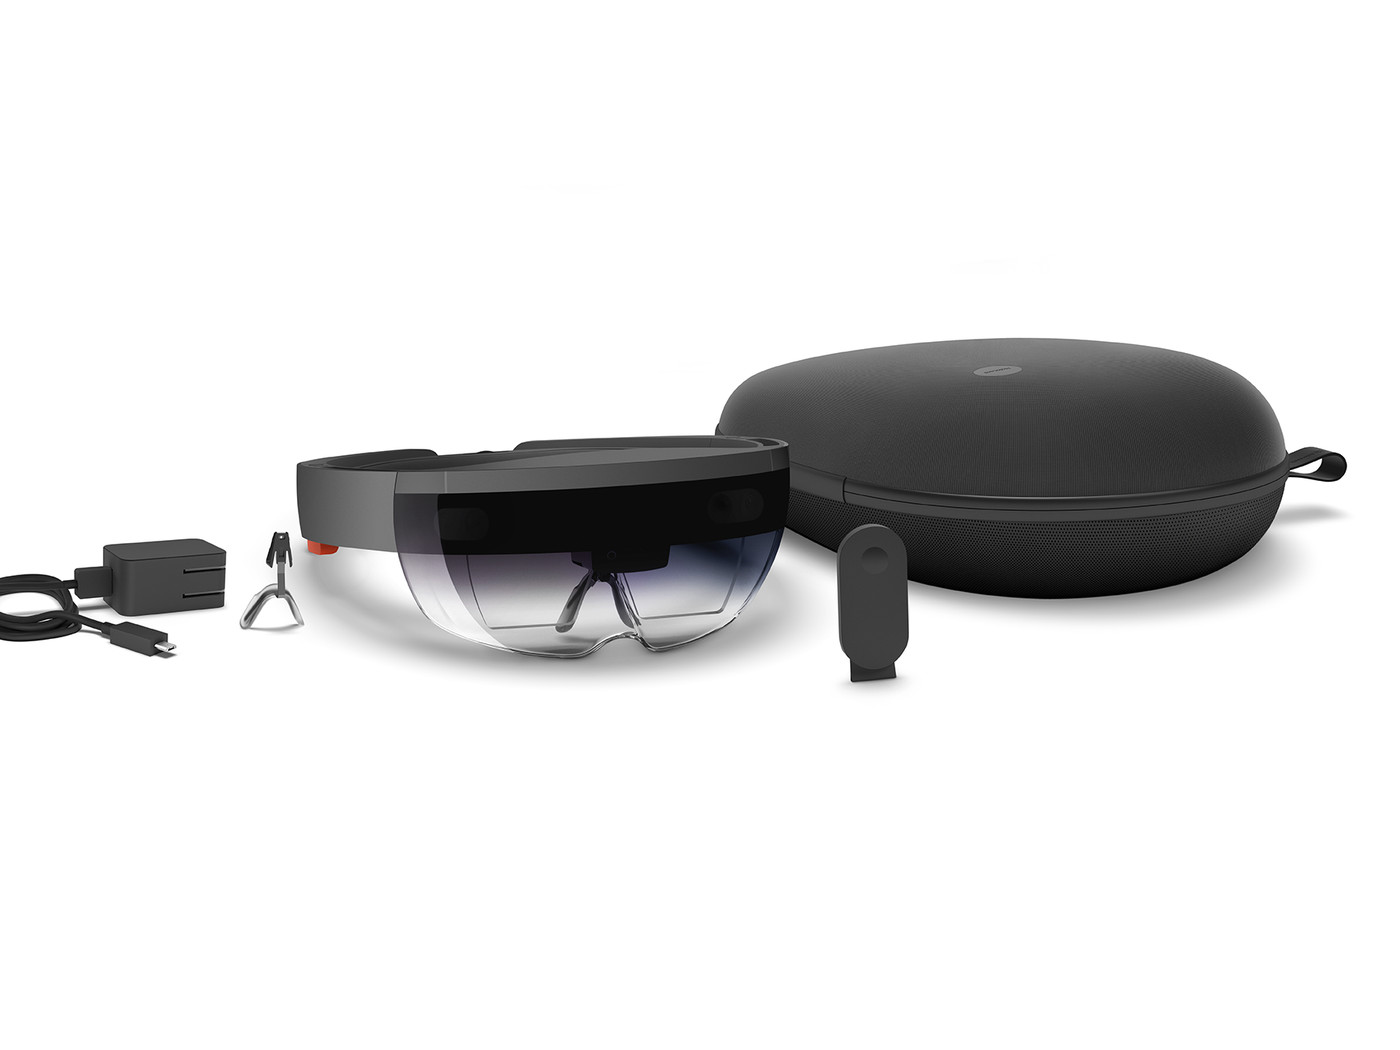 Microsoft reveals HoloLens hardware specs - The Verge